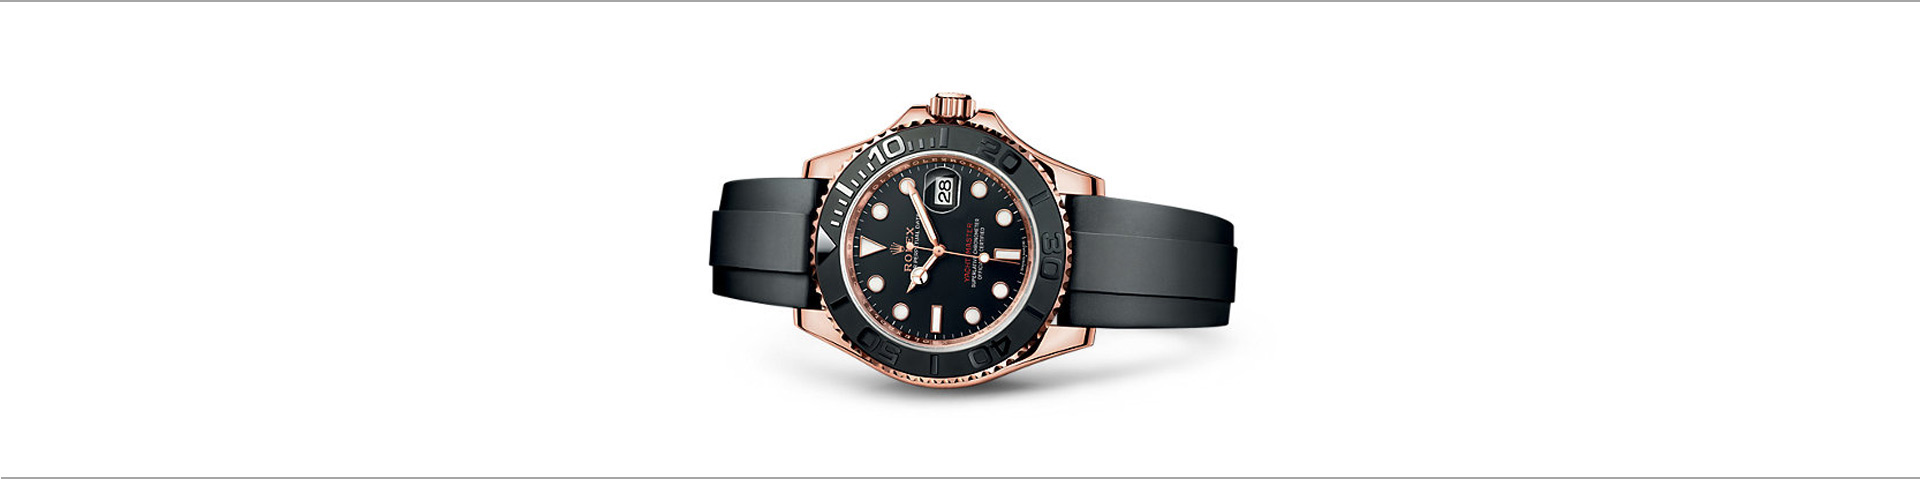 Rolex Yachtmaster Everose Swiss Replica Watch